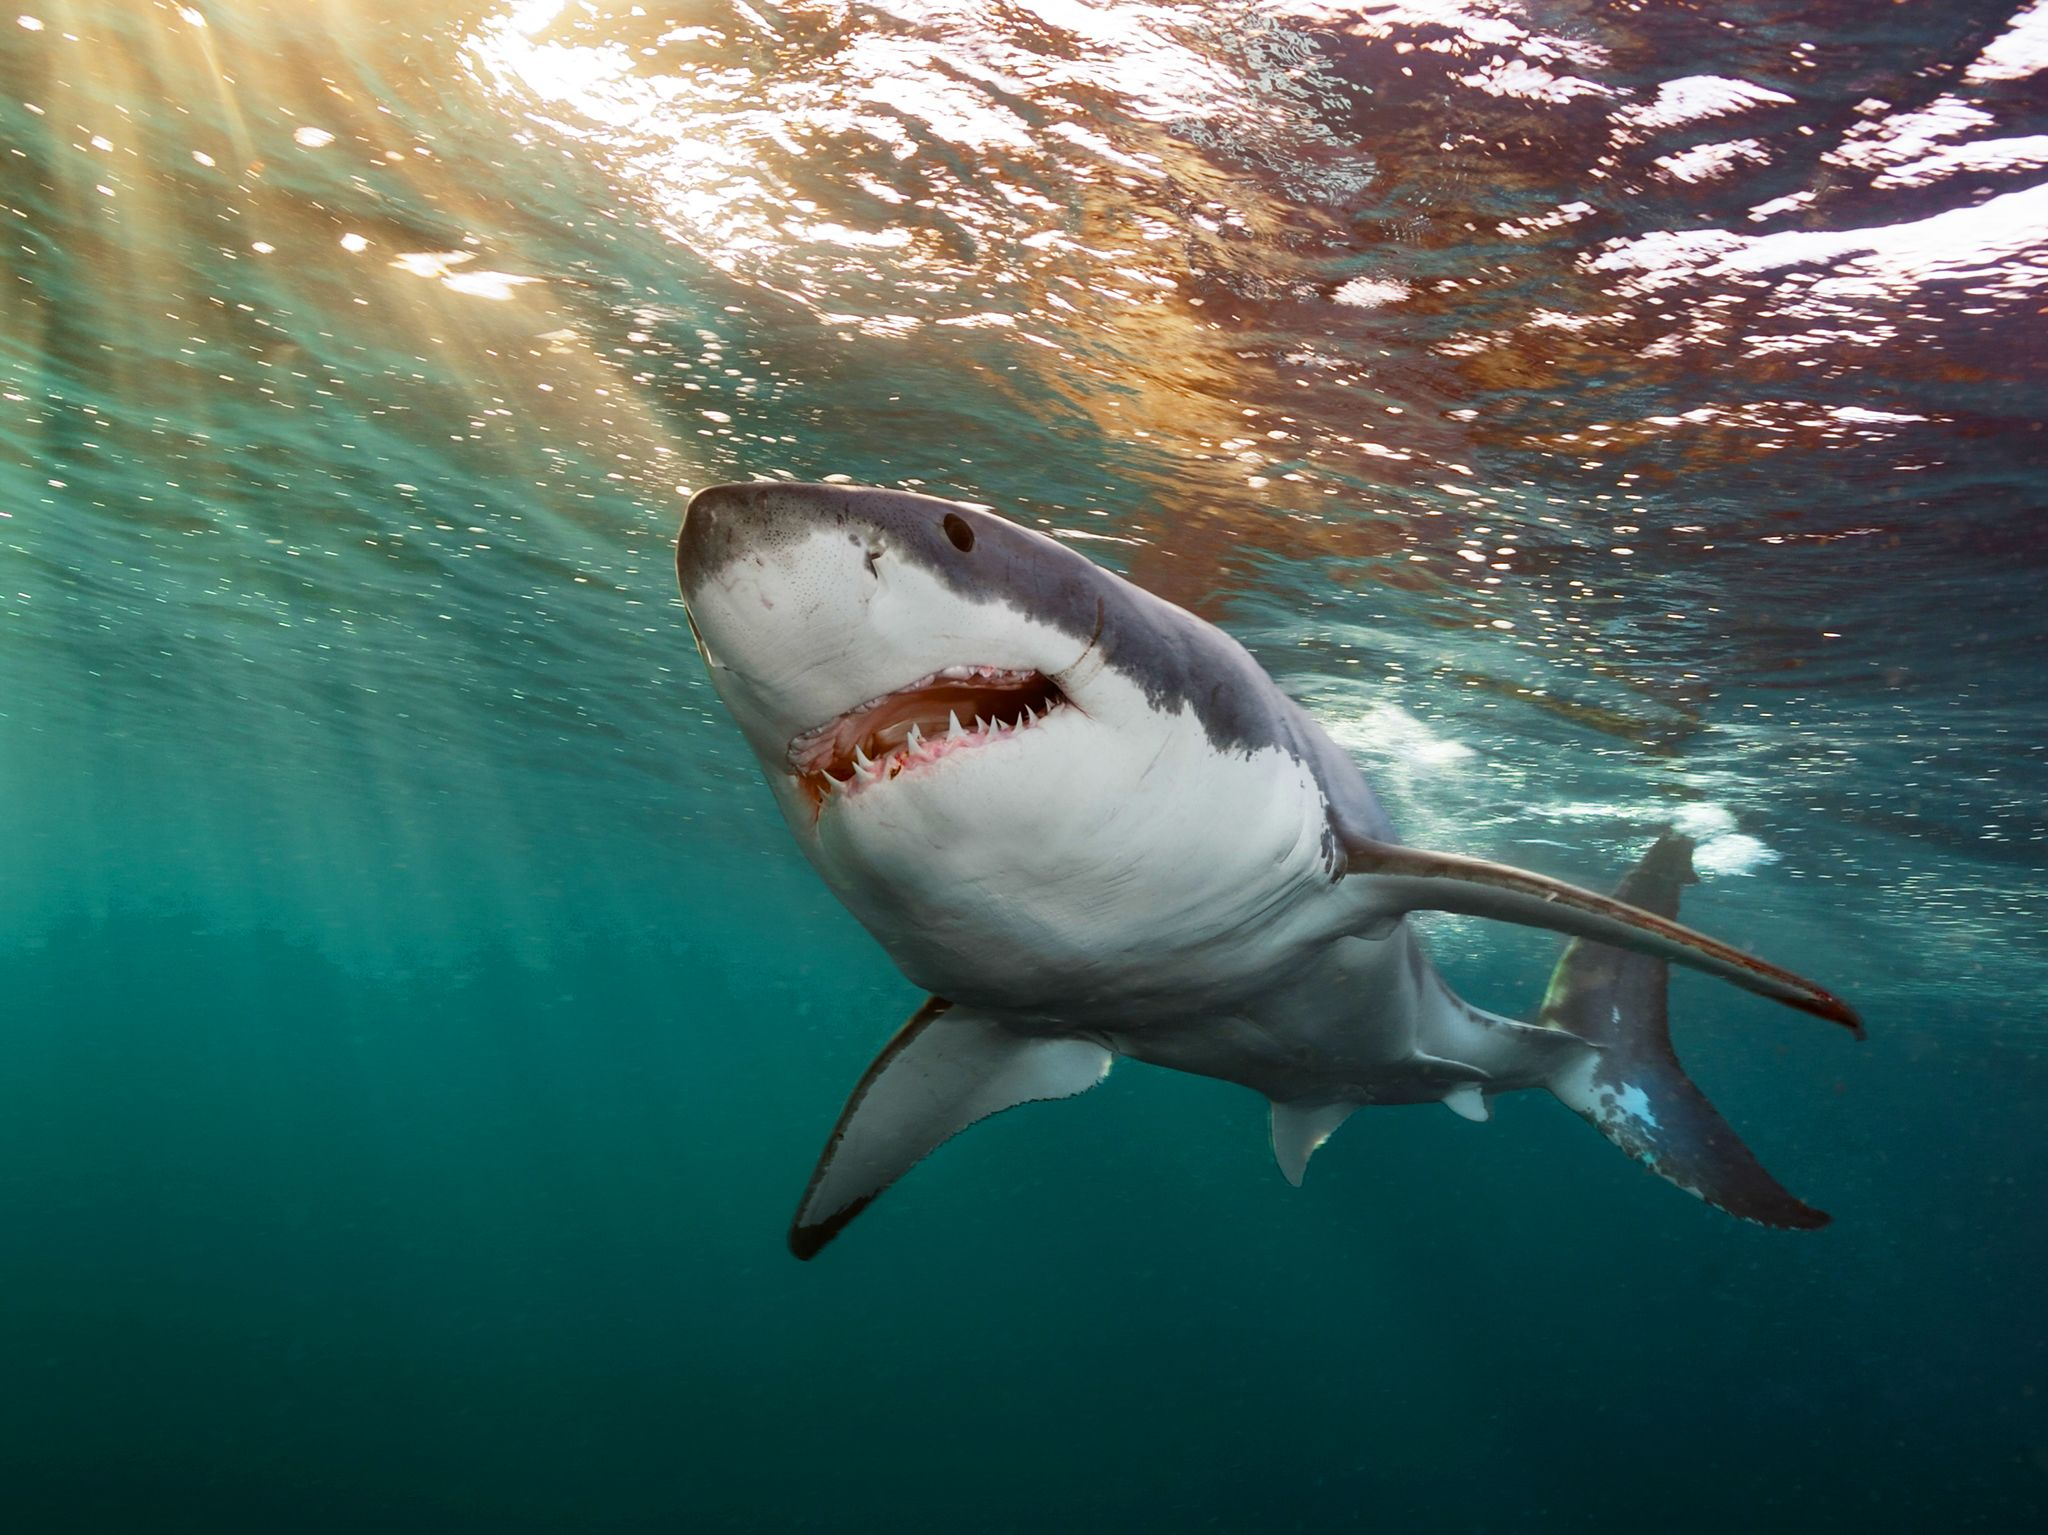 An Great White Shark. This image is from Mission Critical: Animal Avengers. [Foto del giorno - gennaio 2018]